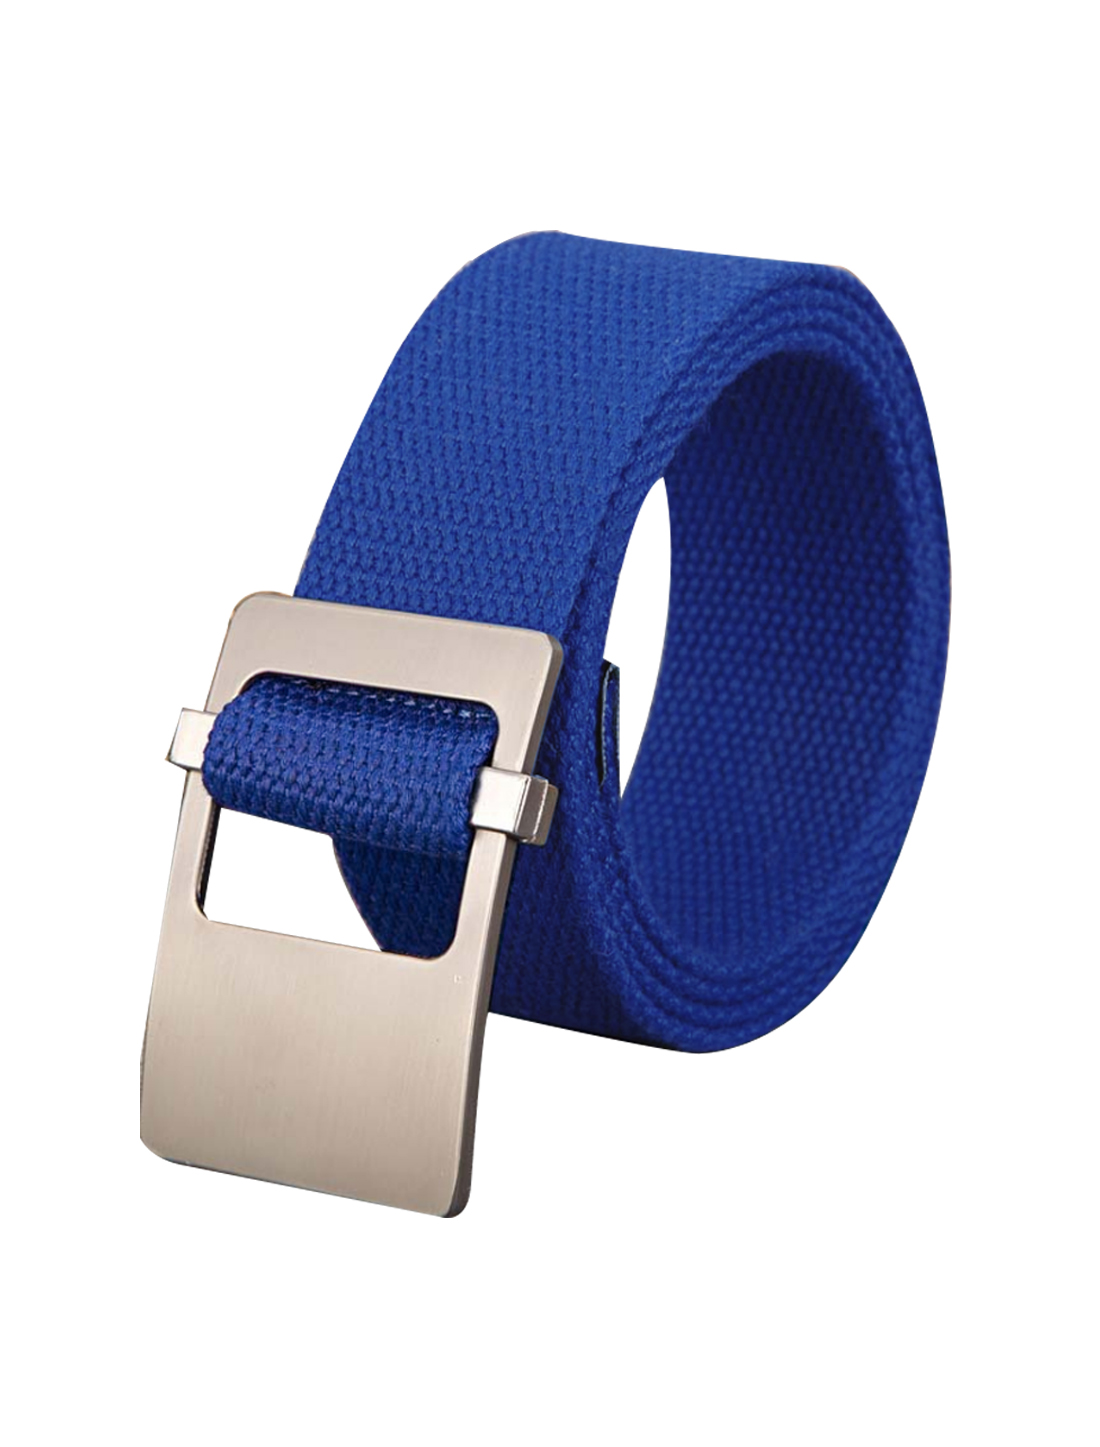 Unisex Canvas Adjustable Holeless Flat Metal Buckle Solid Color Belt Royal Blue